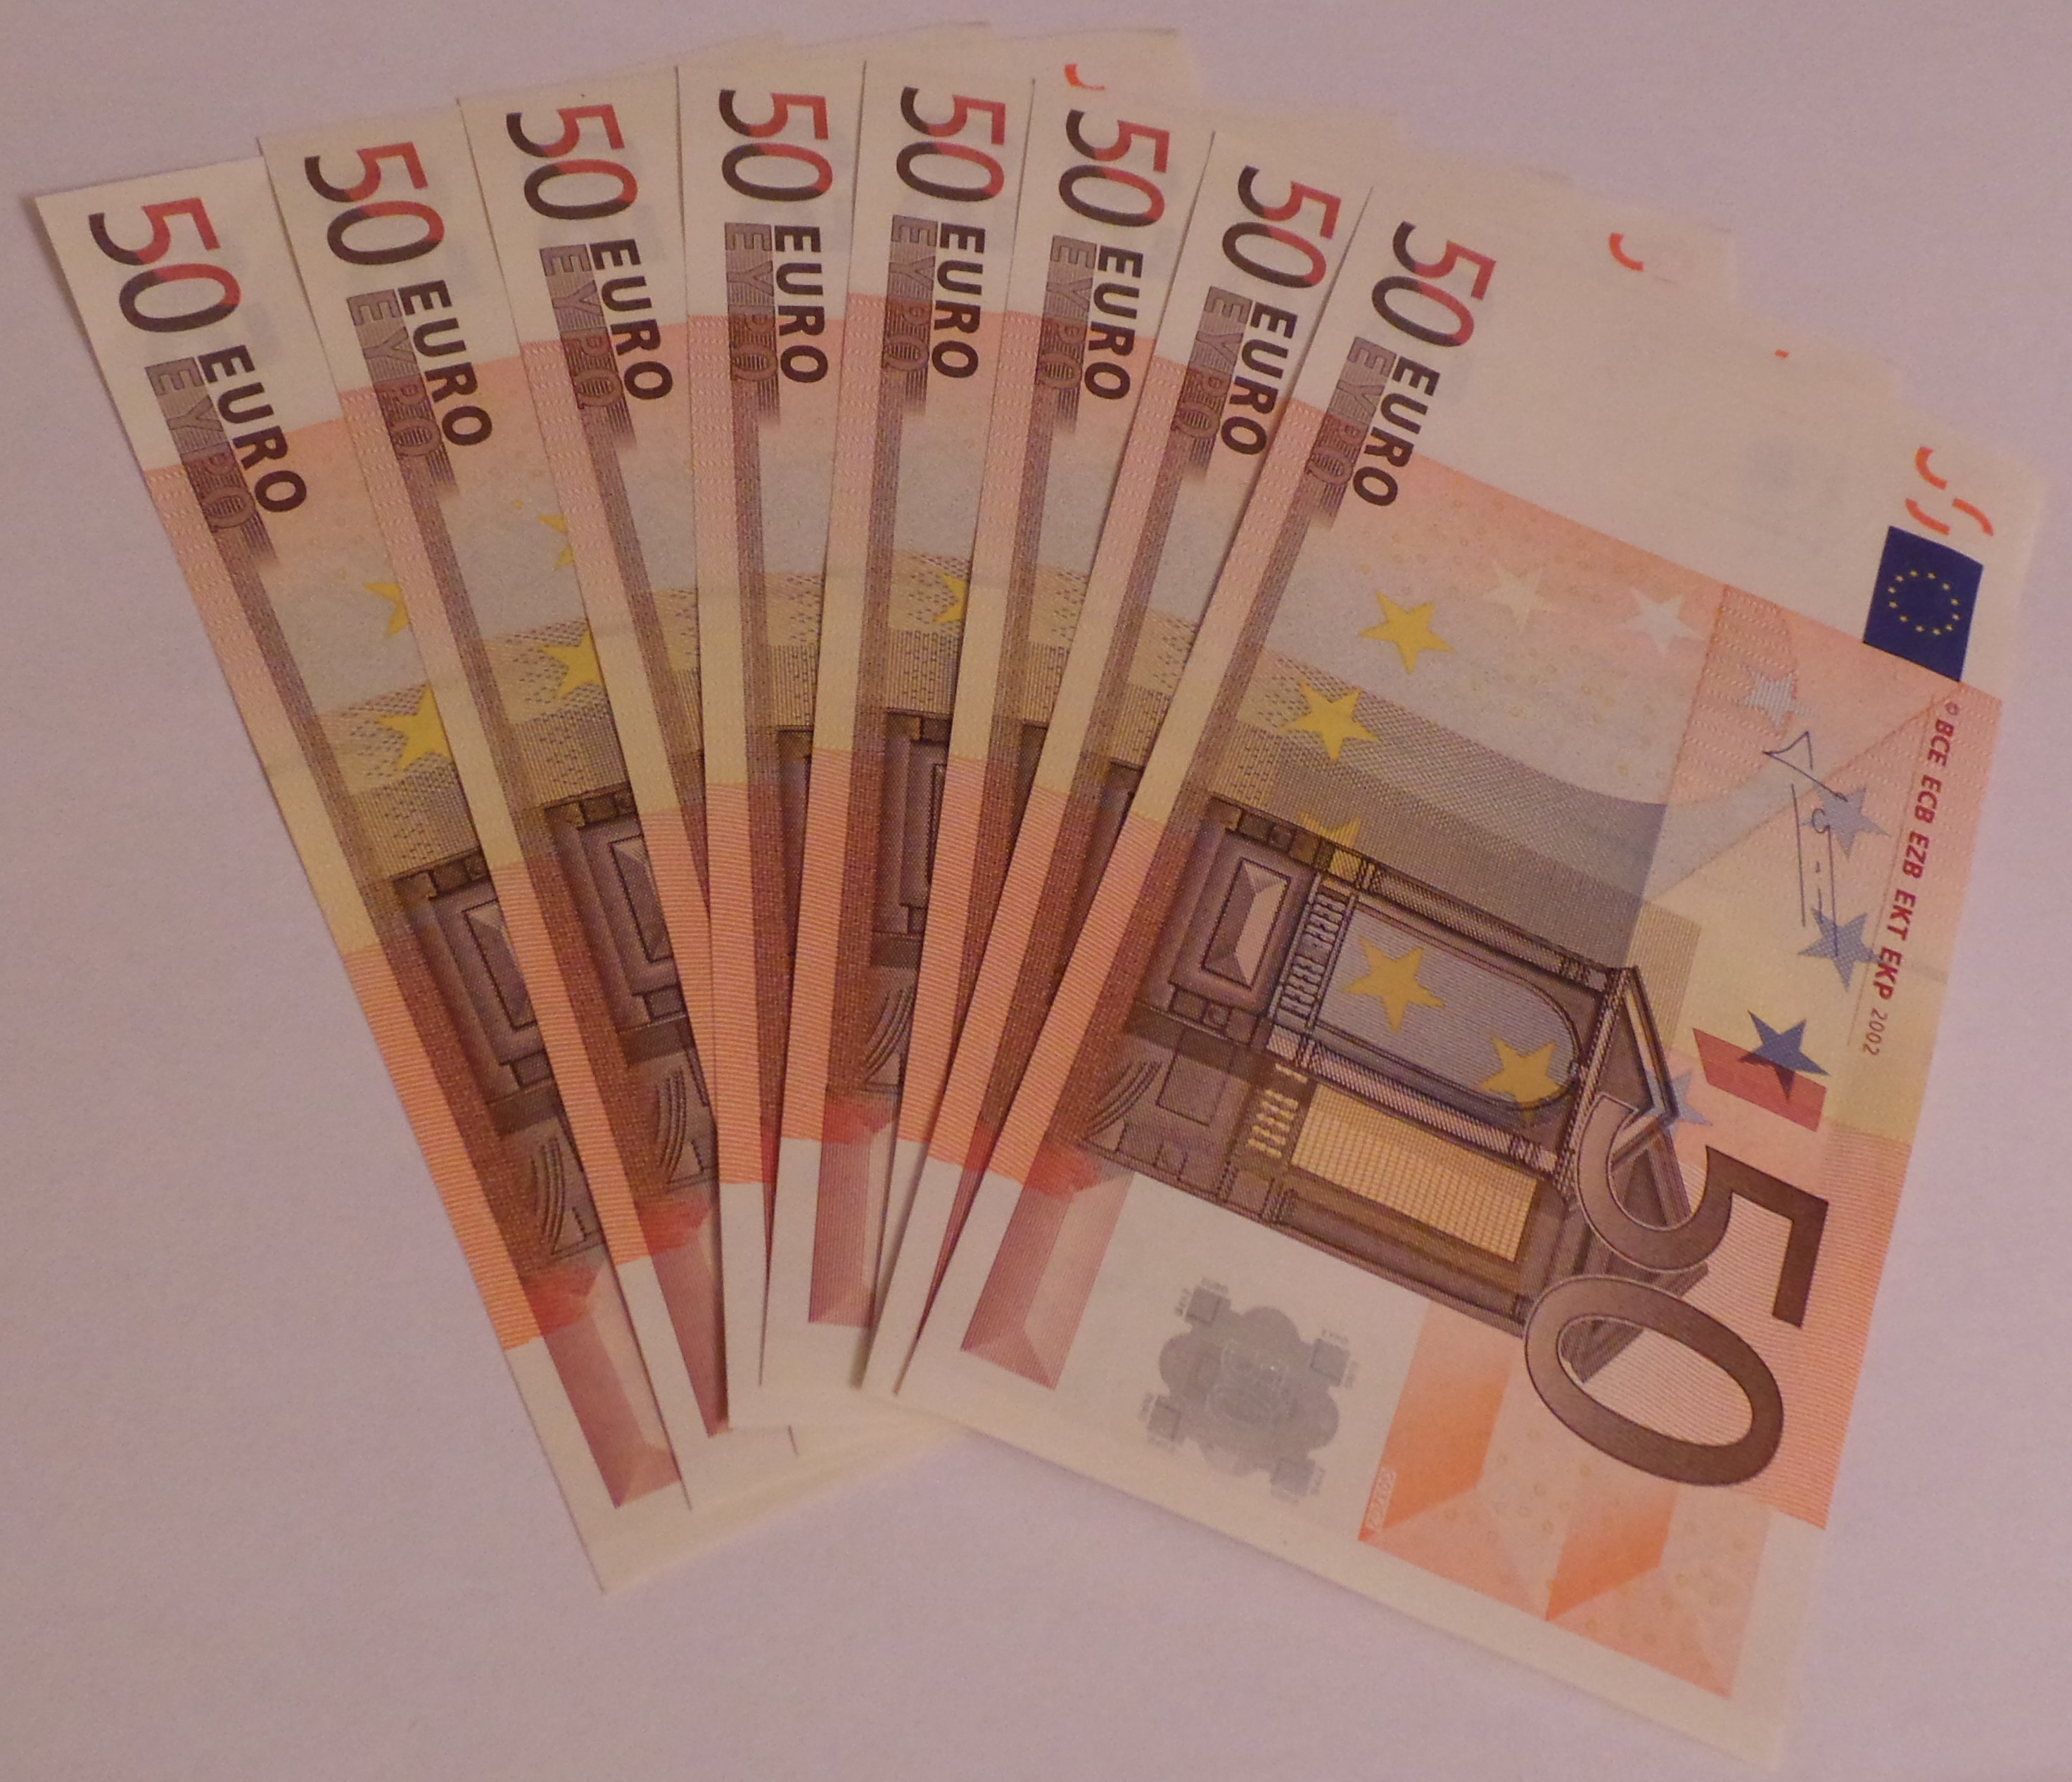 File:400 Euros in 50 Euro notes.jpg - Wikimedia Commons